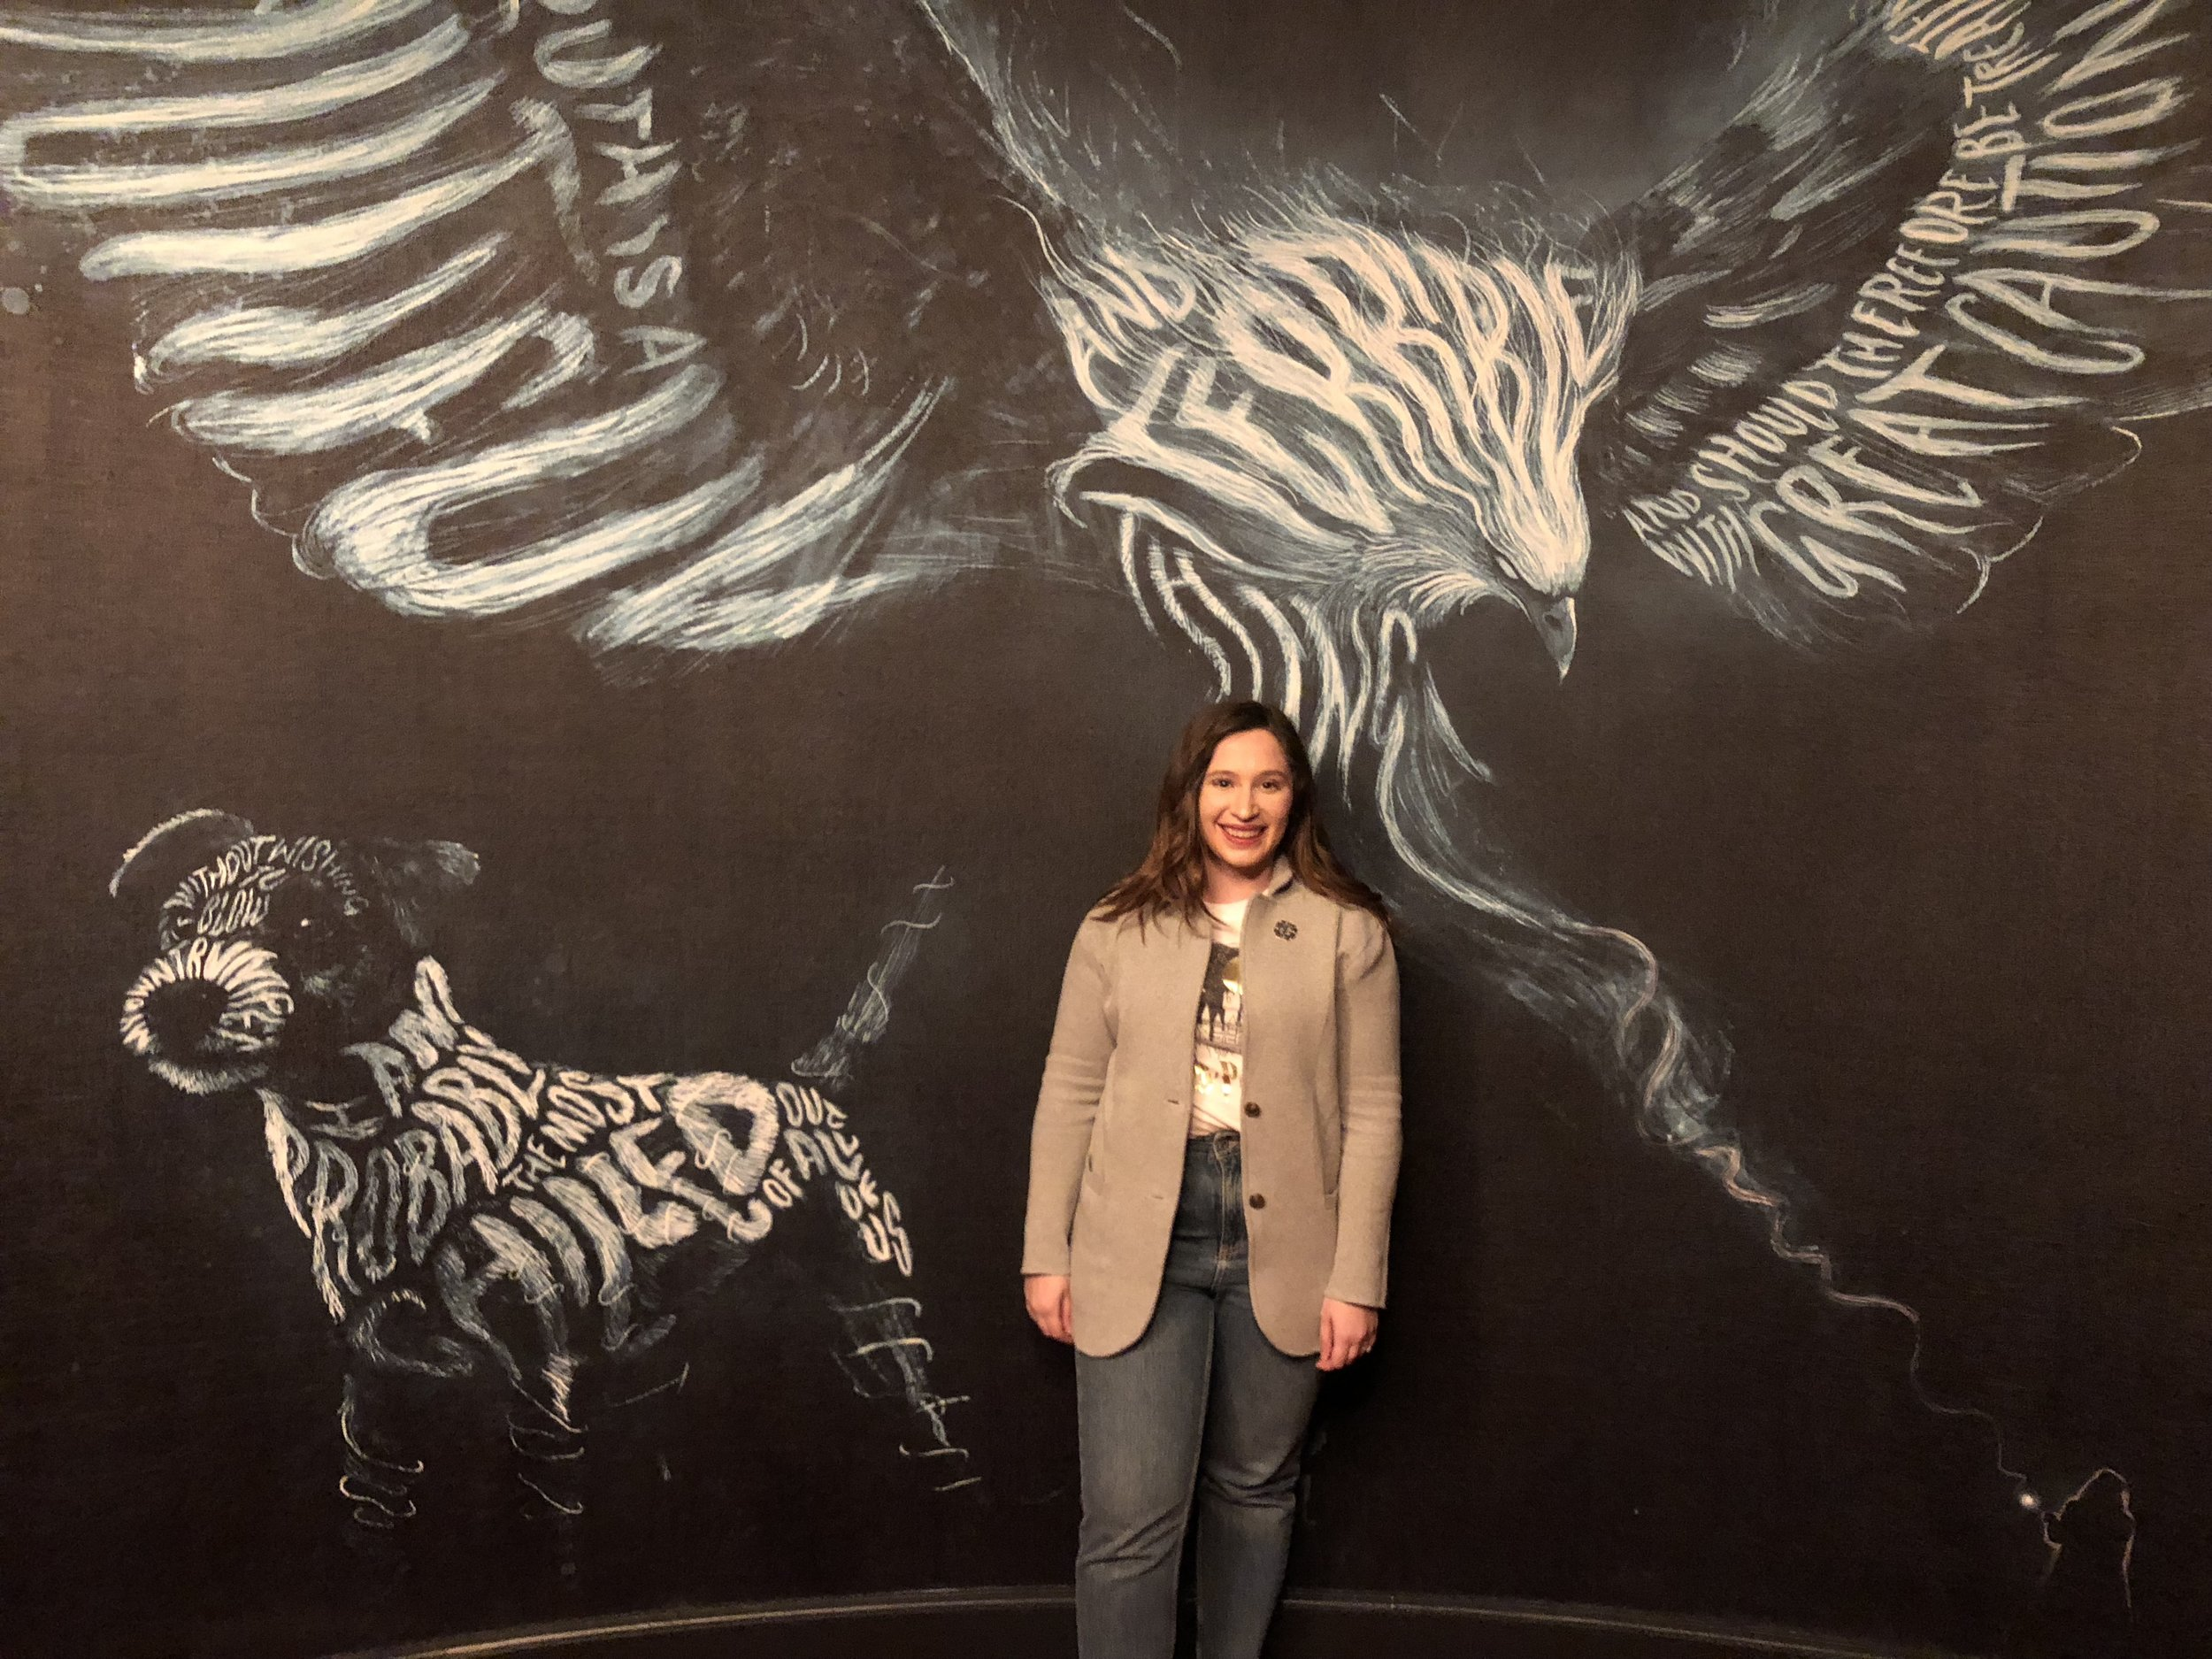 Harry Potter and the Cursed Child NYC patronus room